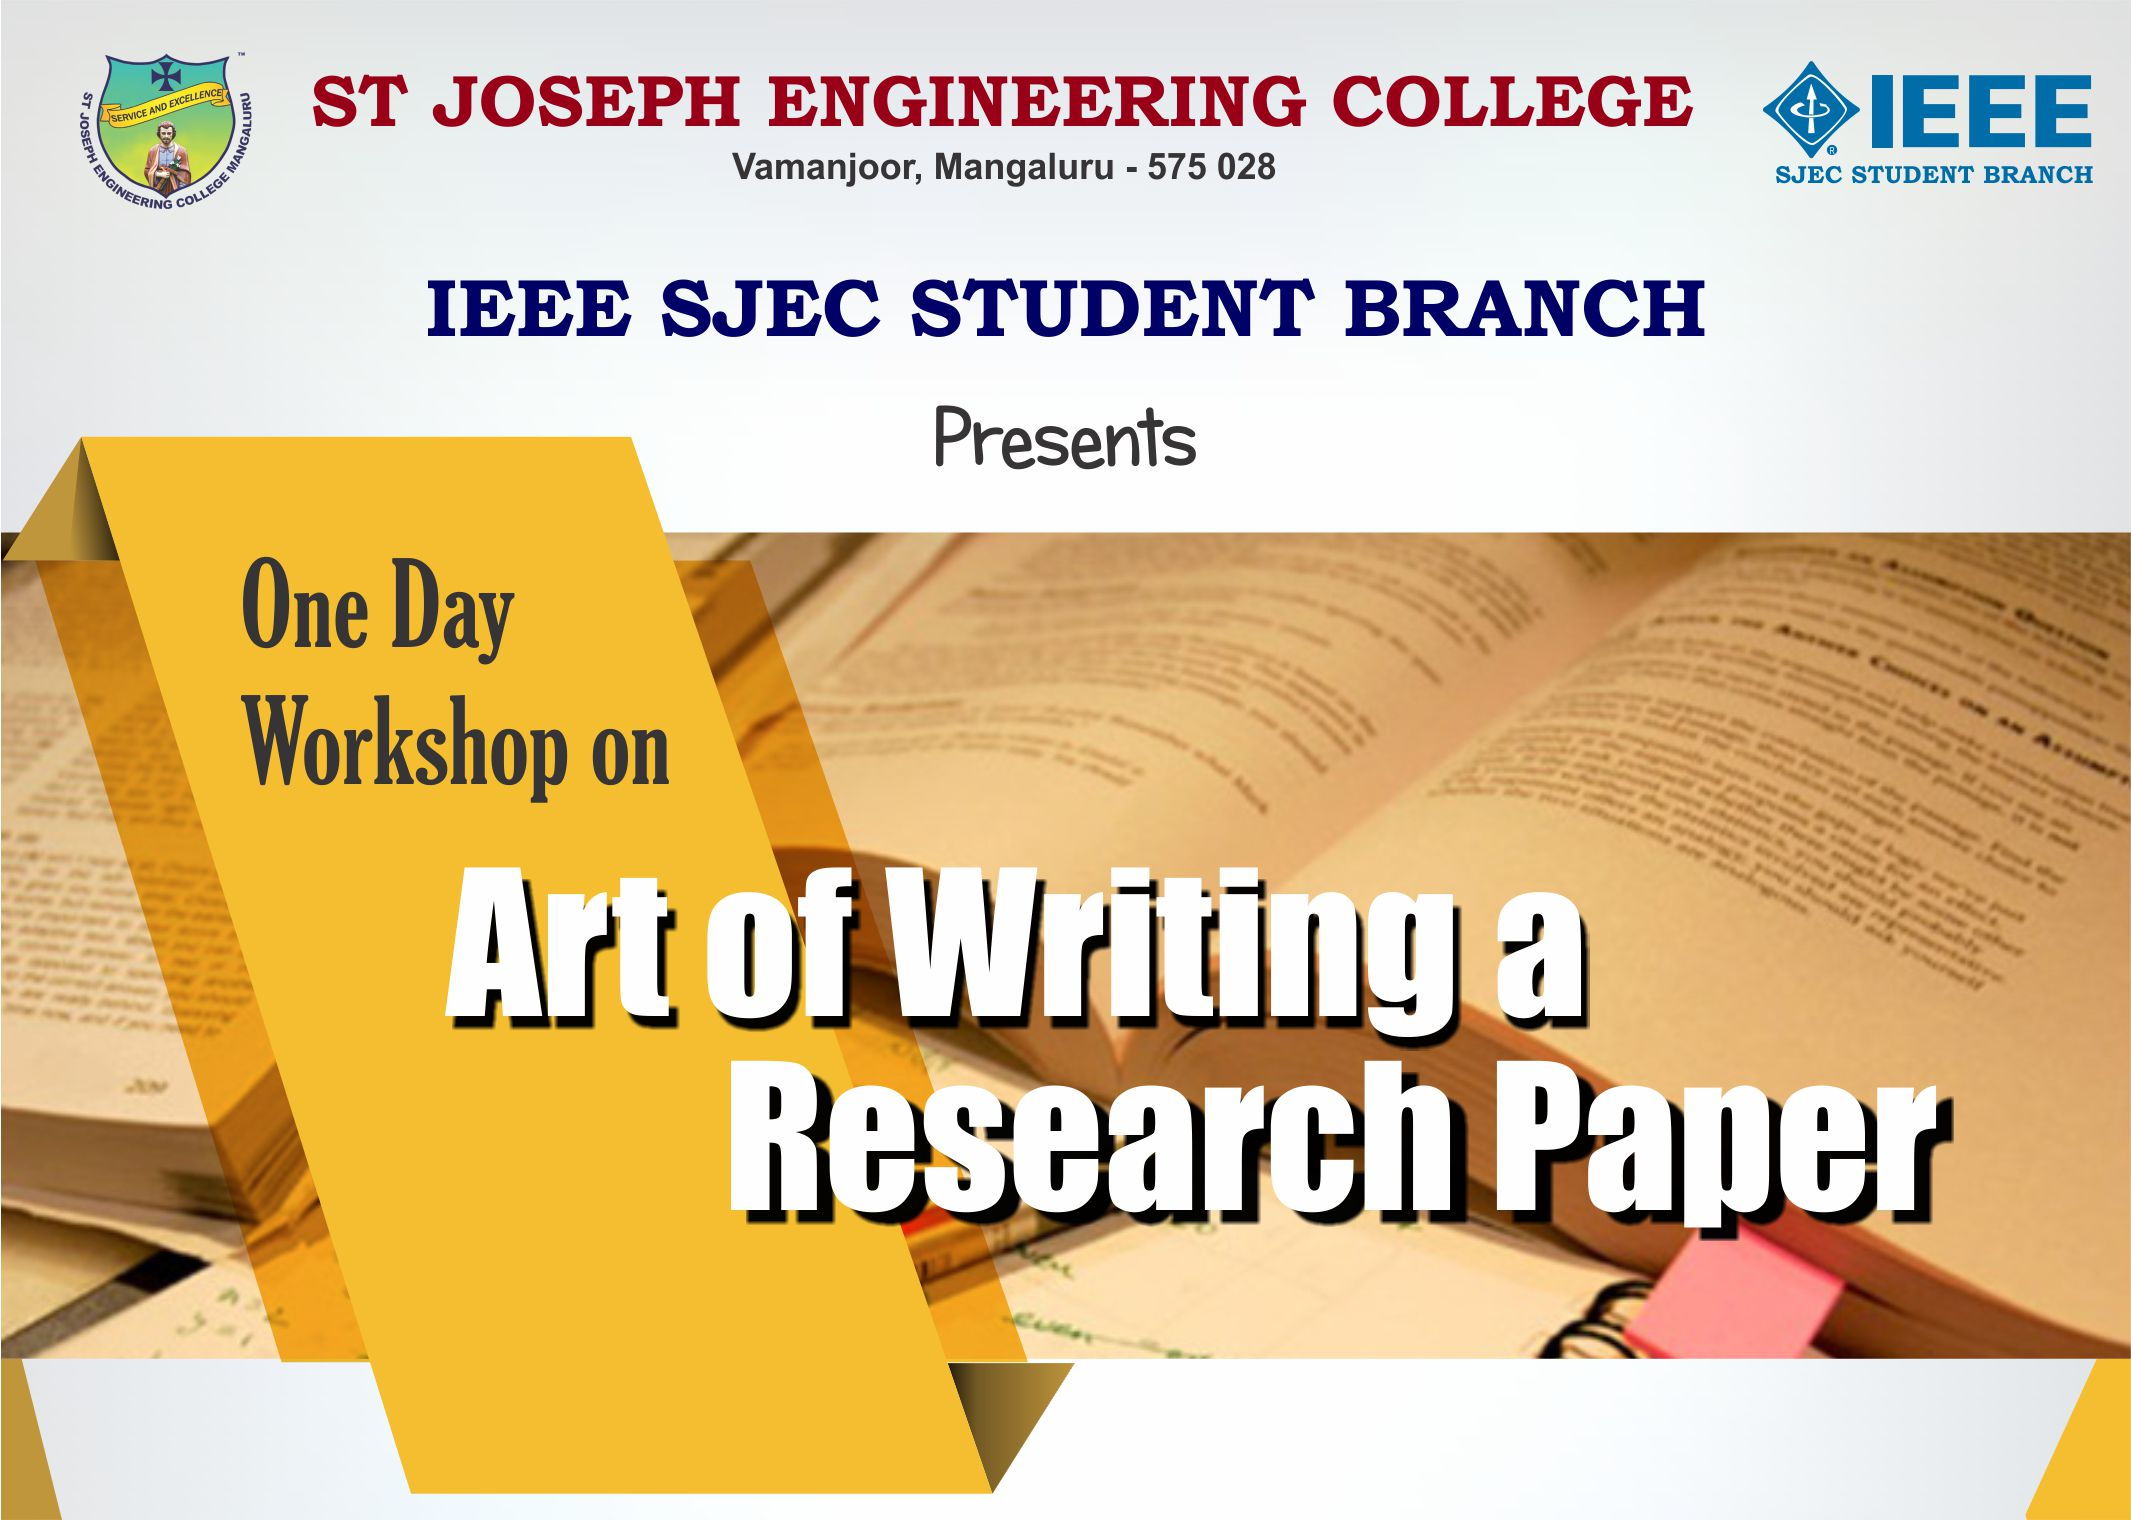 011 Workshop Banner Research Paper Striking Writing Papers Across The Curriculum Pdf 15th Edition Lester Full